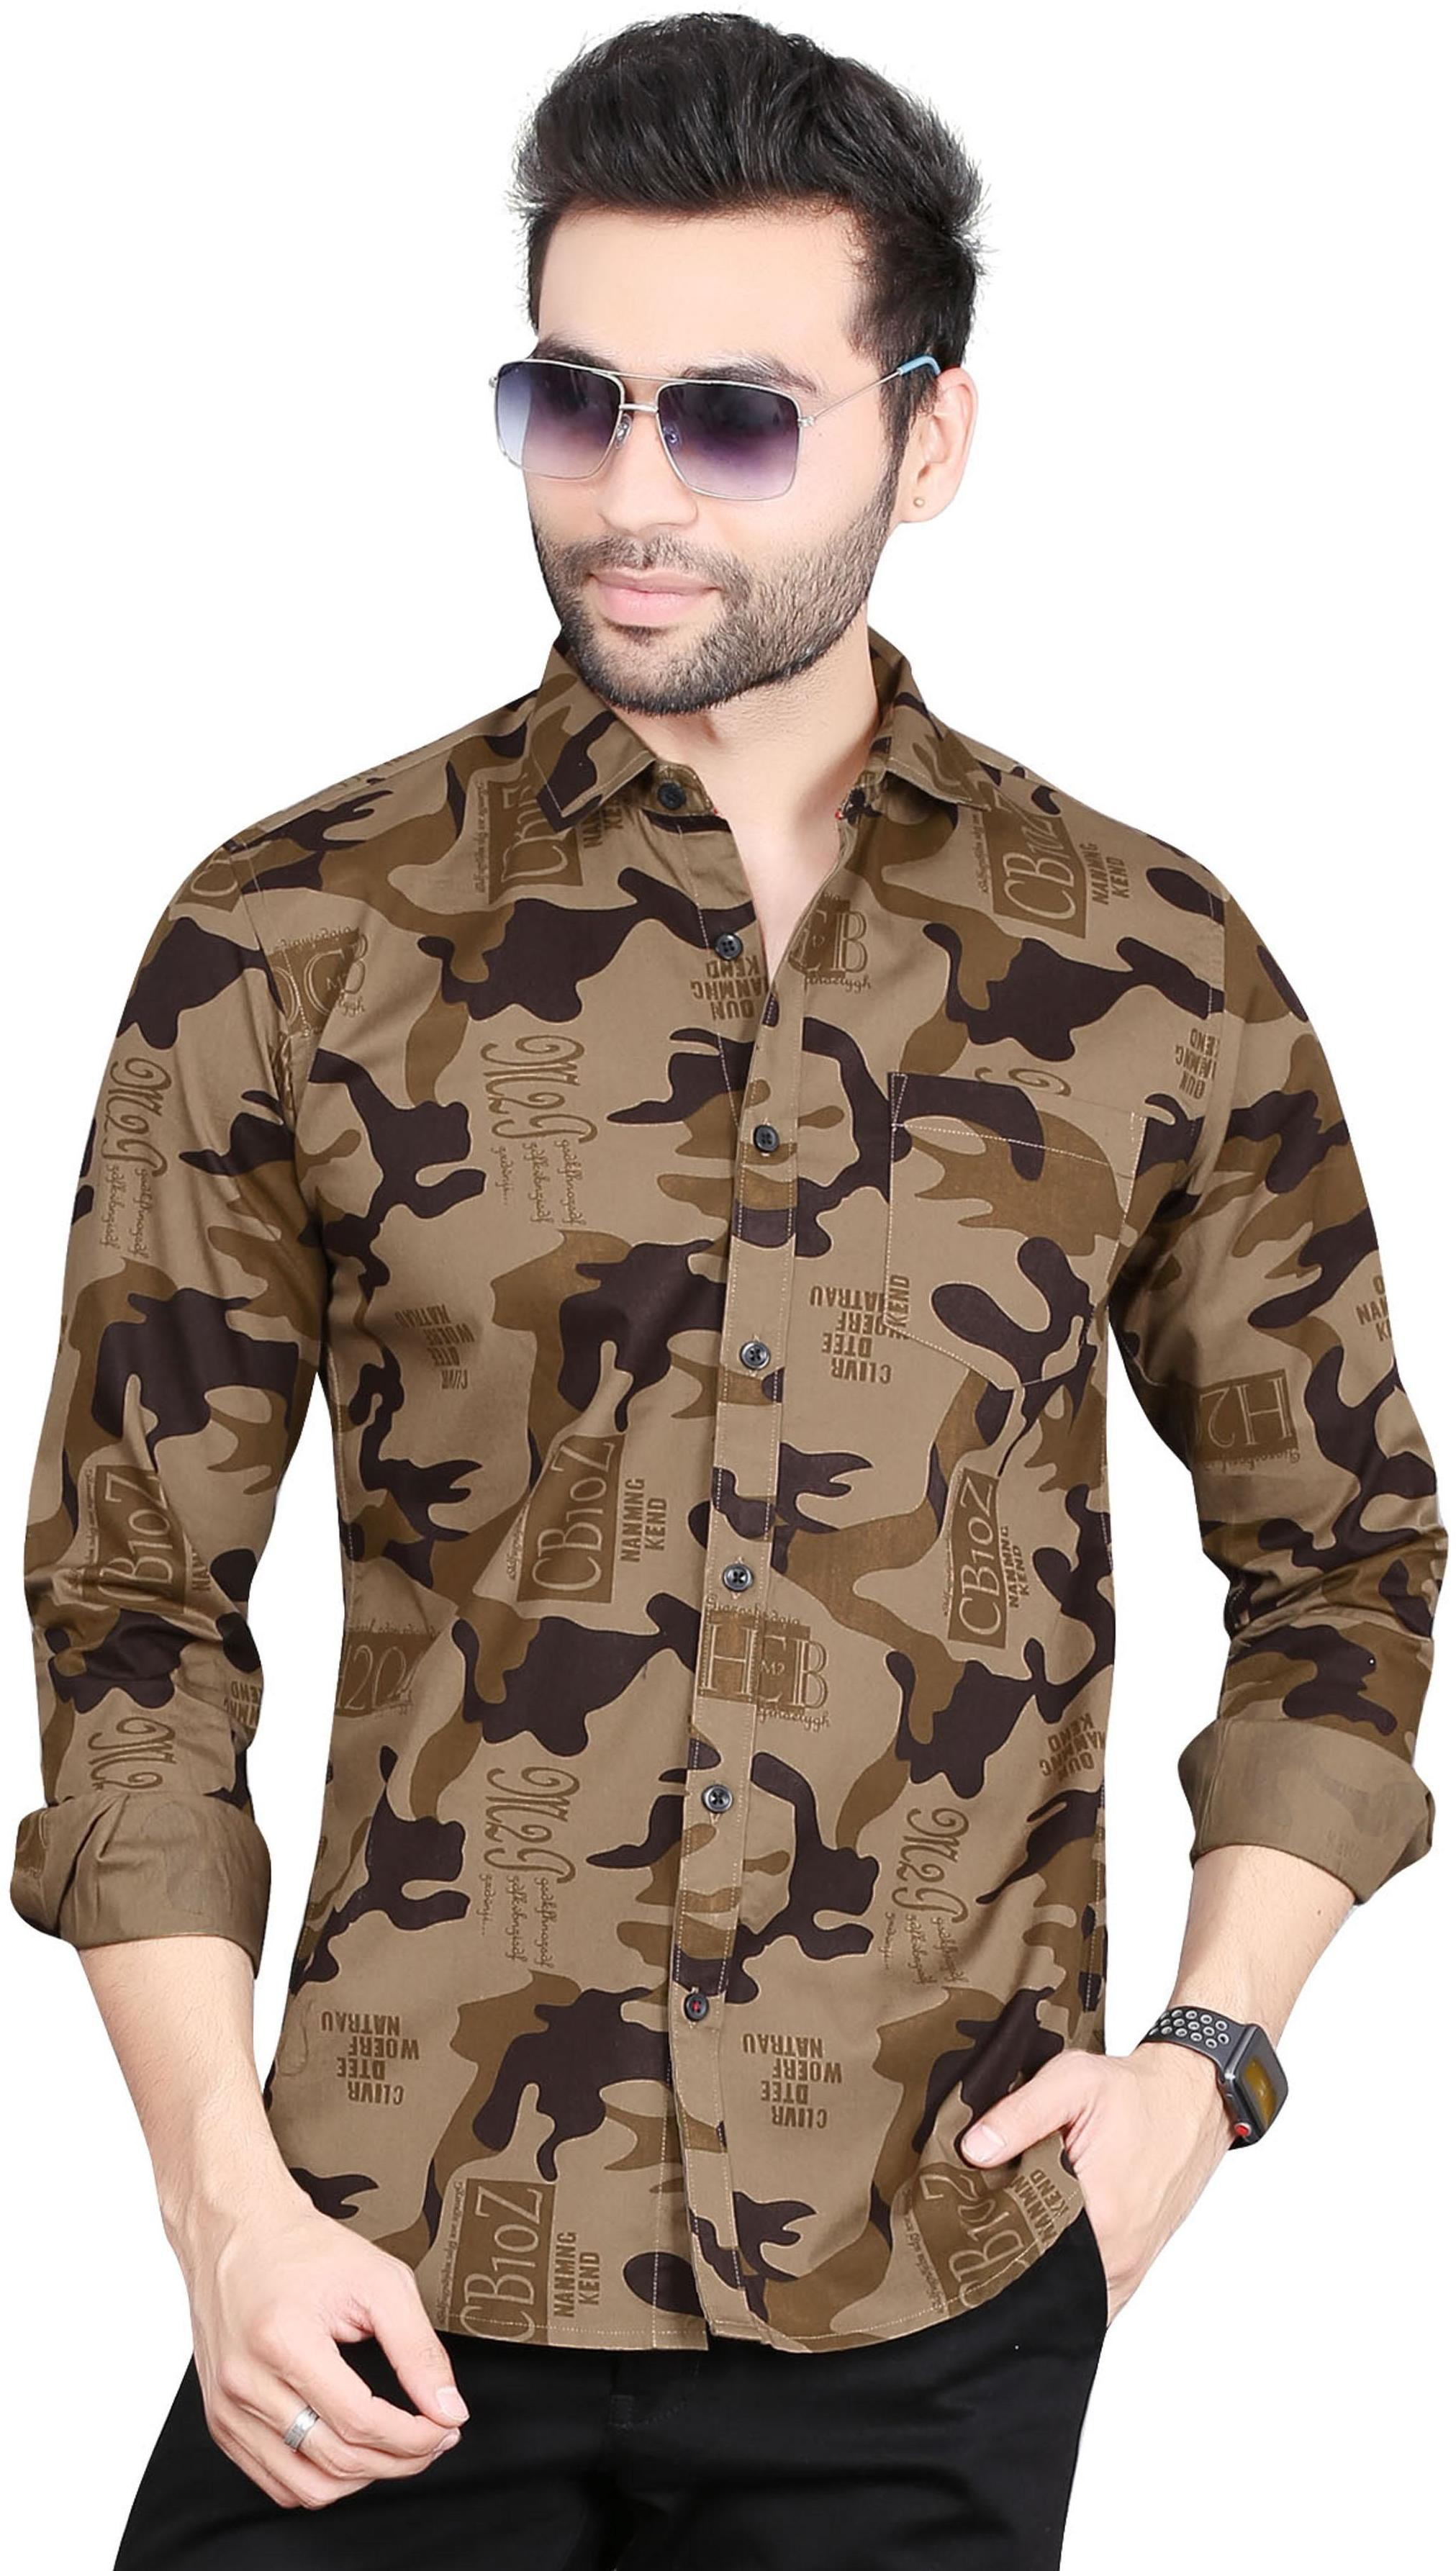 5th Anfold   Camofleg Printed Cotton Shirt by Fifth Anfold